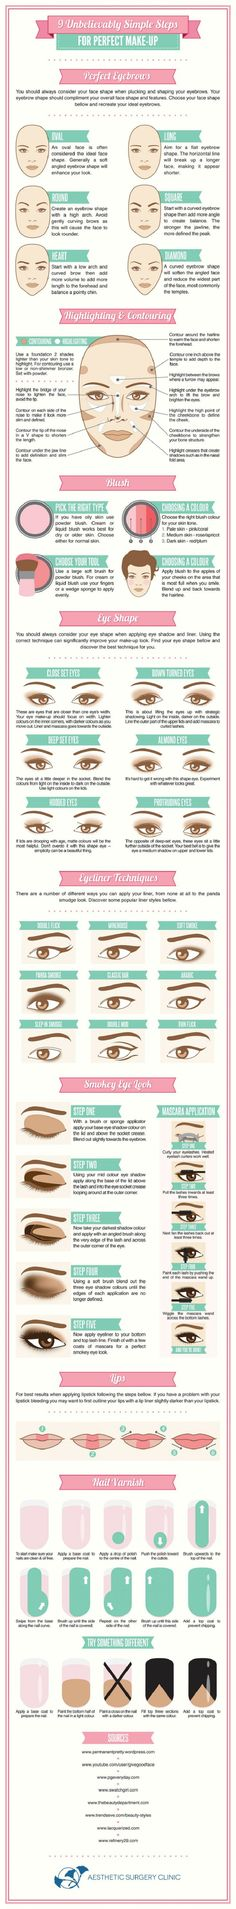 9 Simple Steps for Perfect Makeup - 10 Best Pinterest Infographics for All Beauty Addicts | GleamItUp